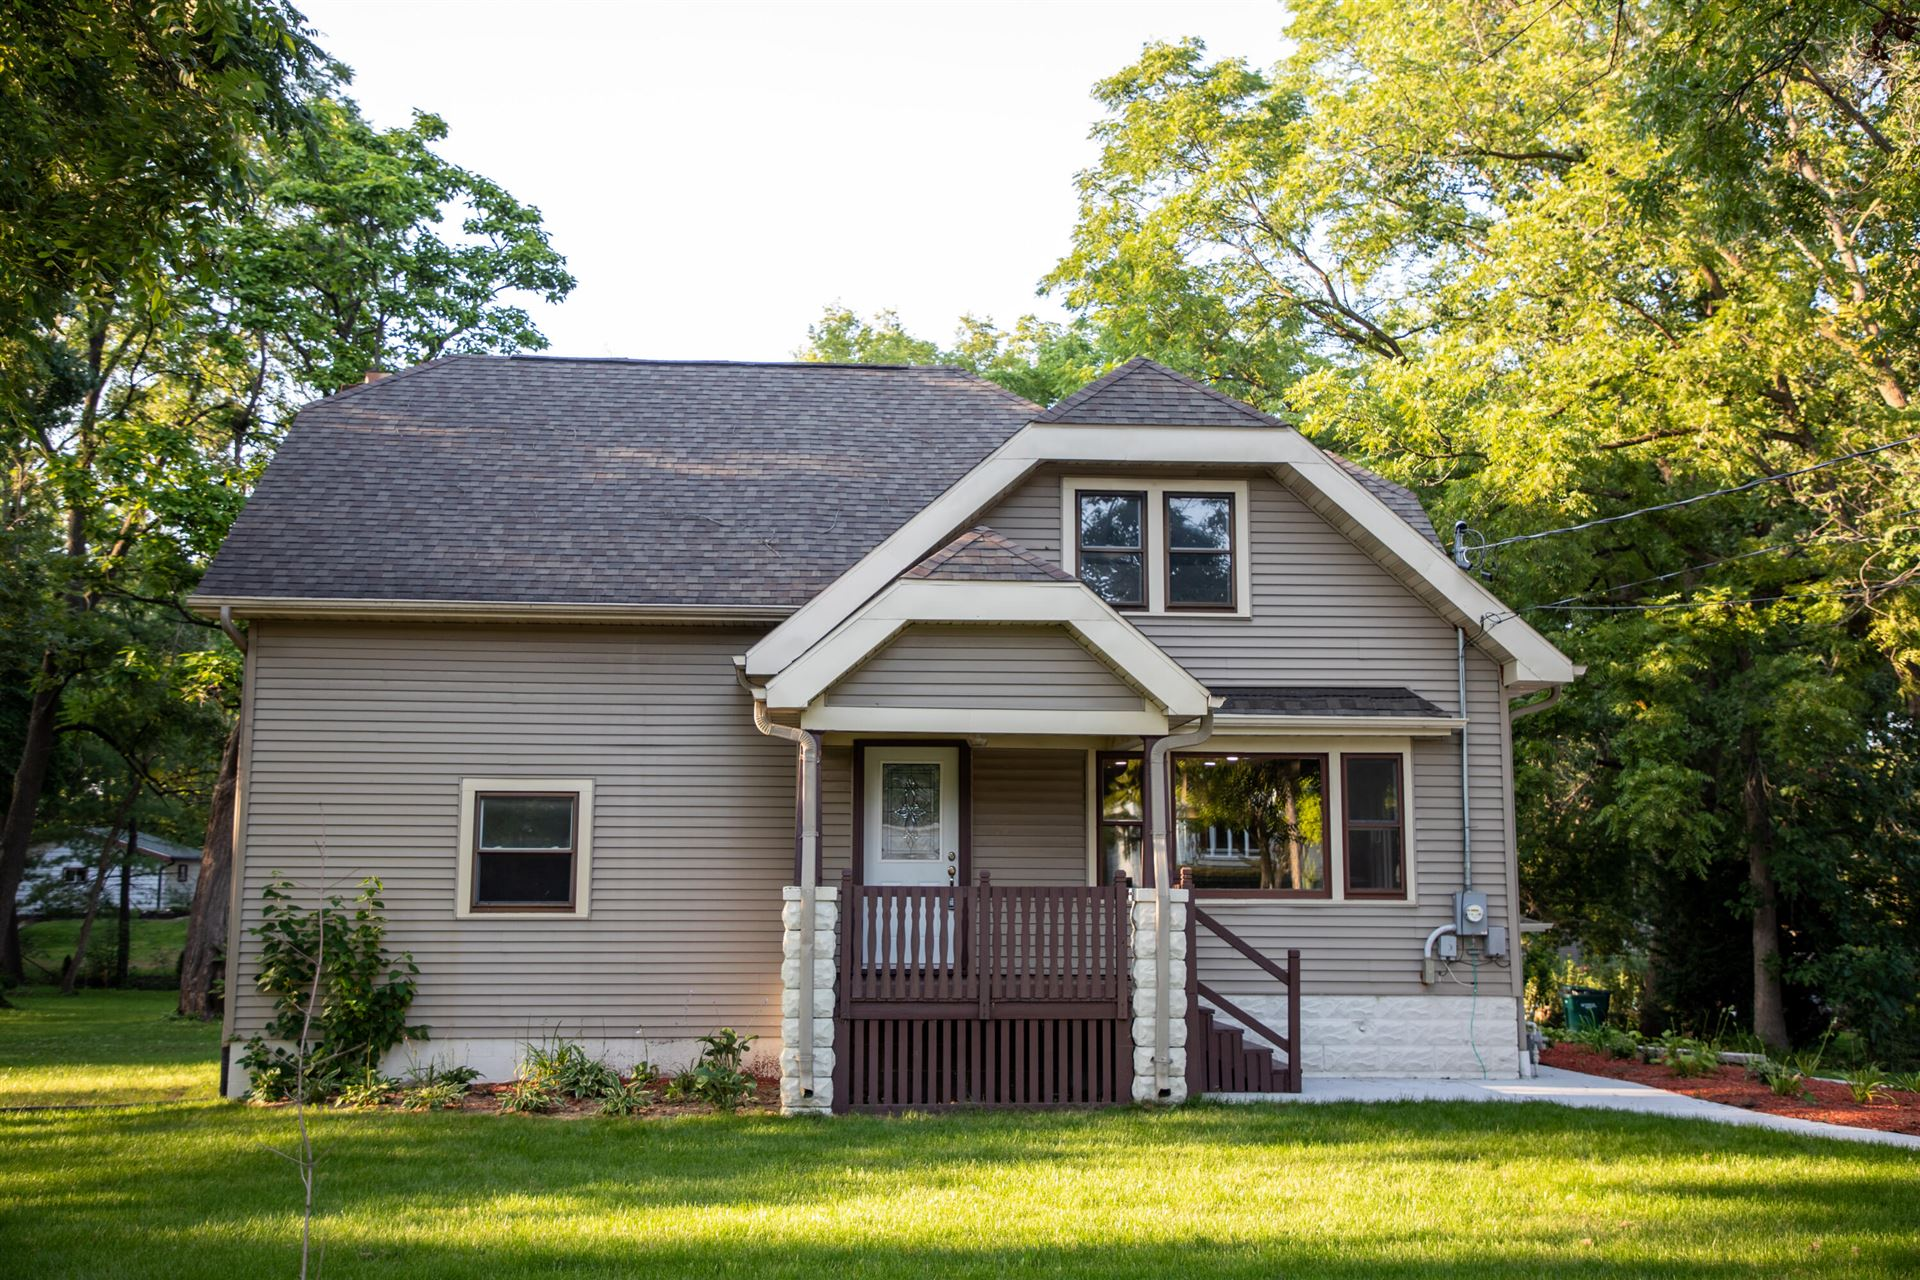 12506 W Forest Dr, New Berlin, WI 53151 - MLS#: 1736139